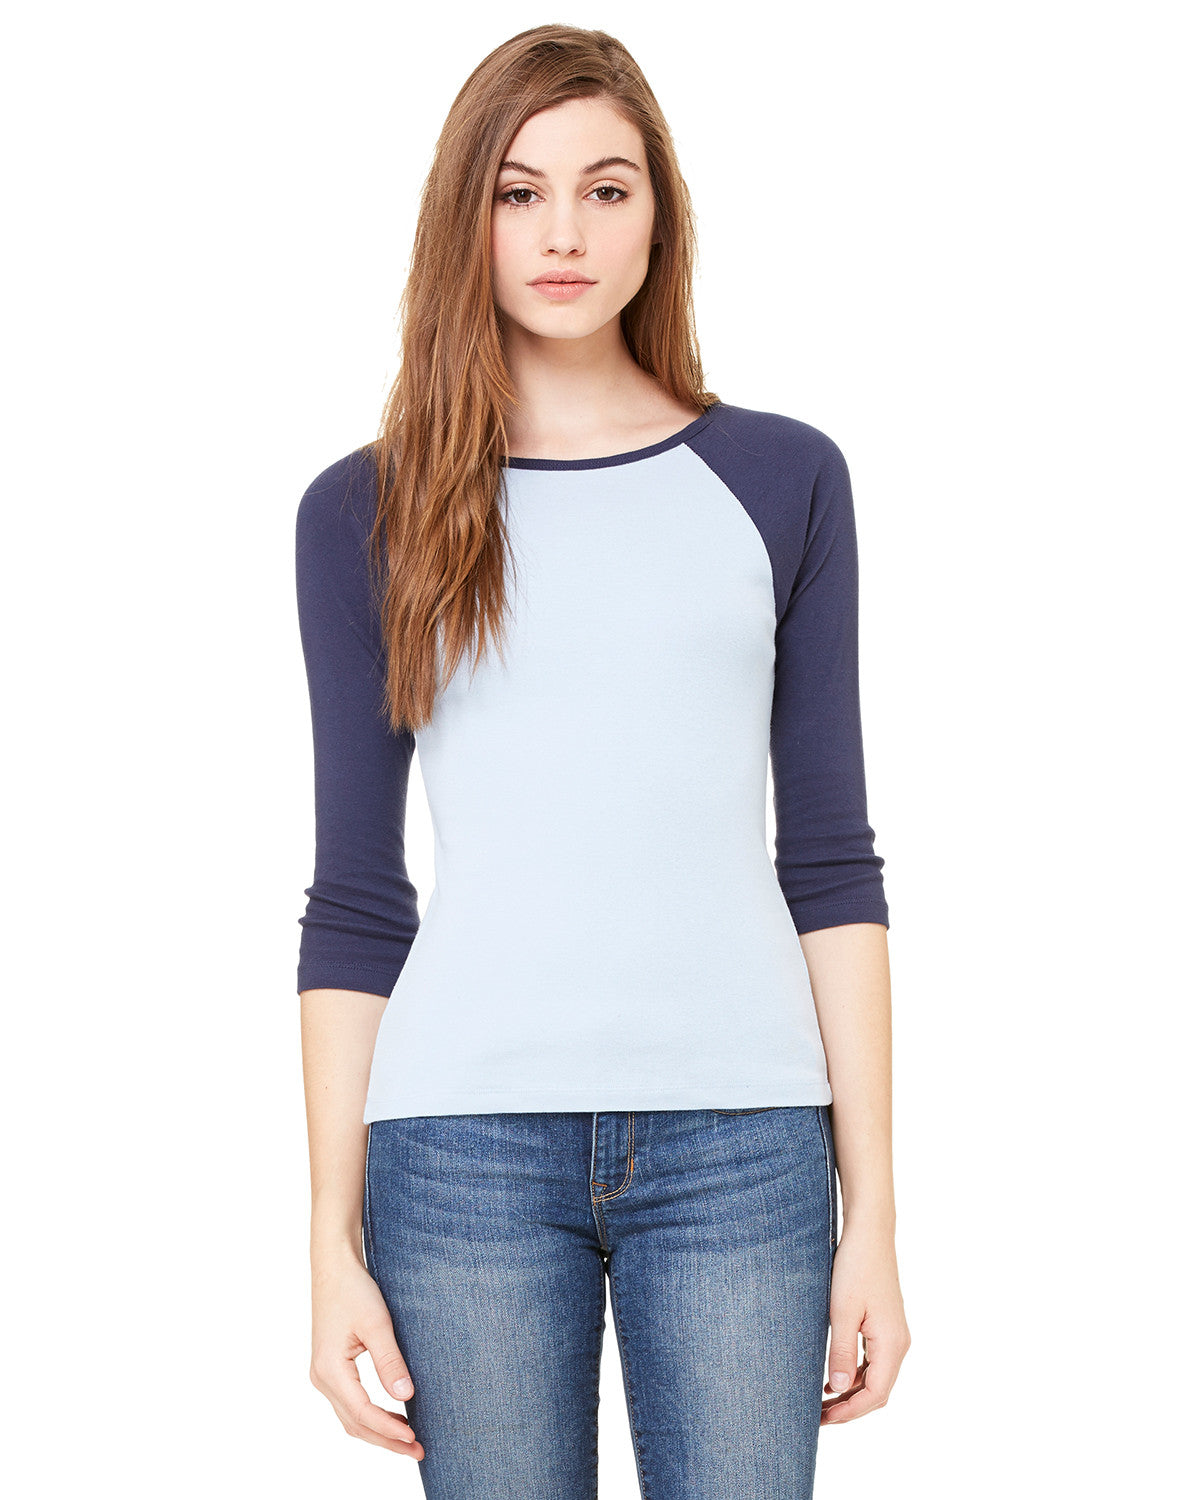 Ladies Baby Rib Three Quarter Sleeve Contrast Raglan Tee